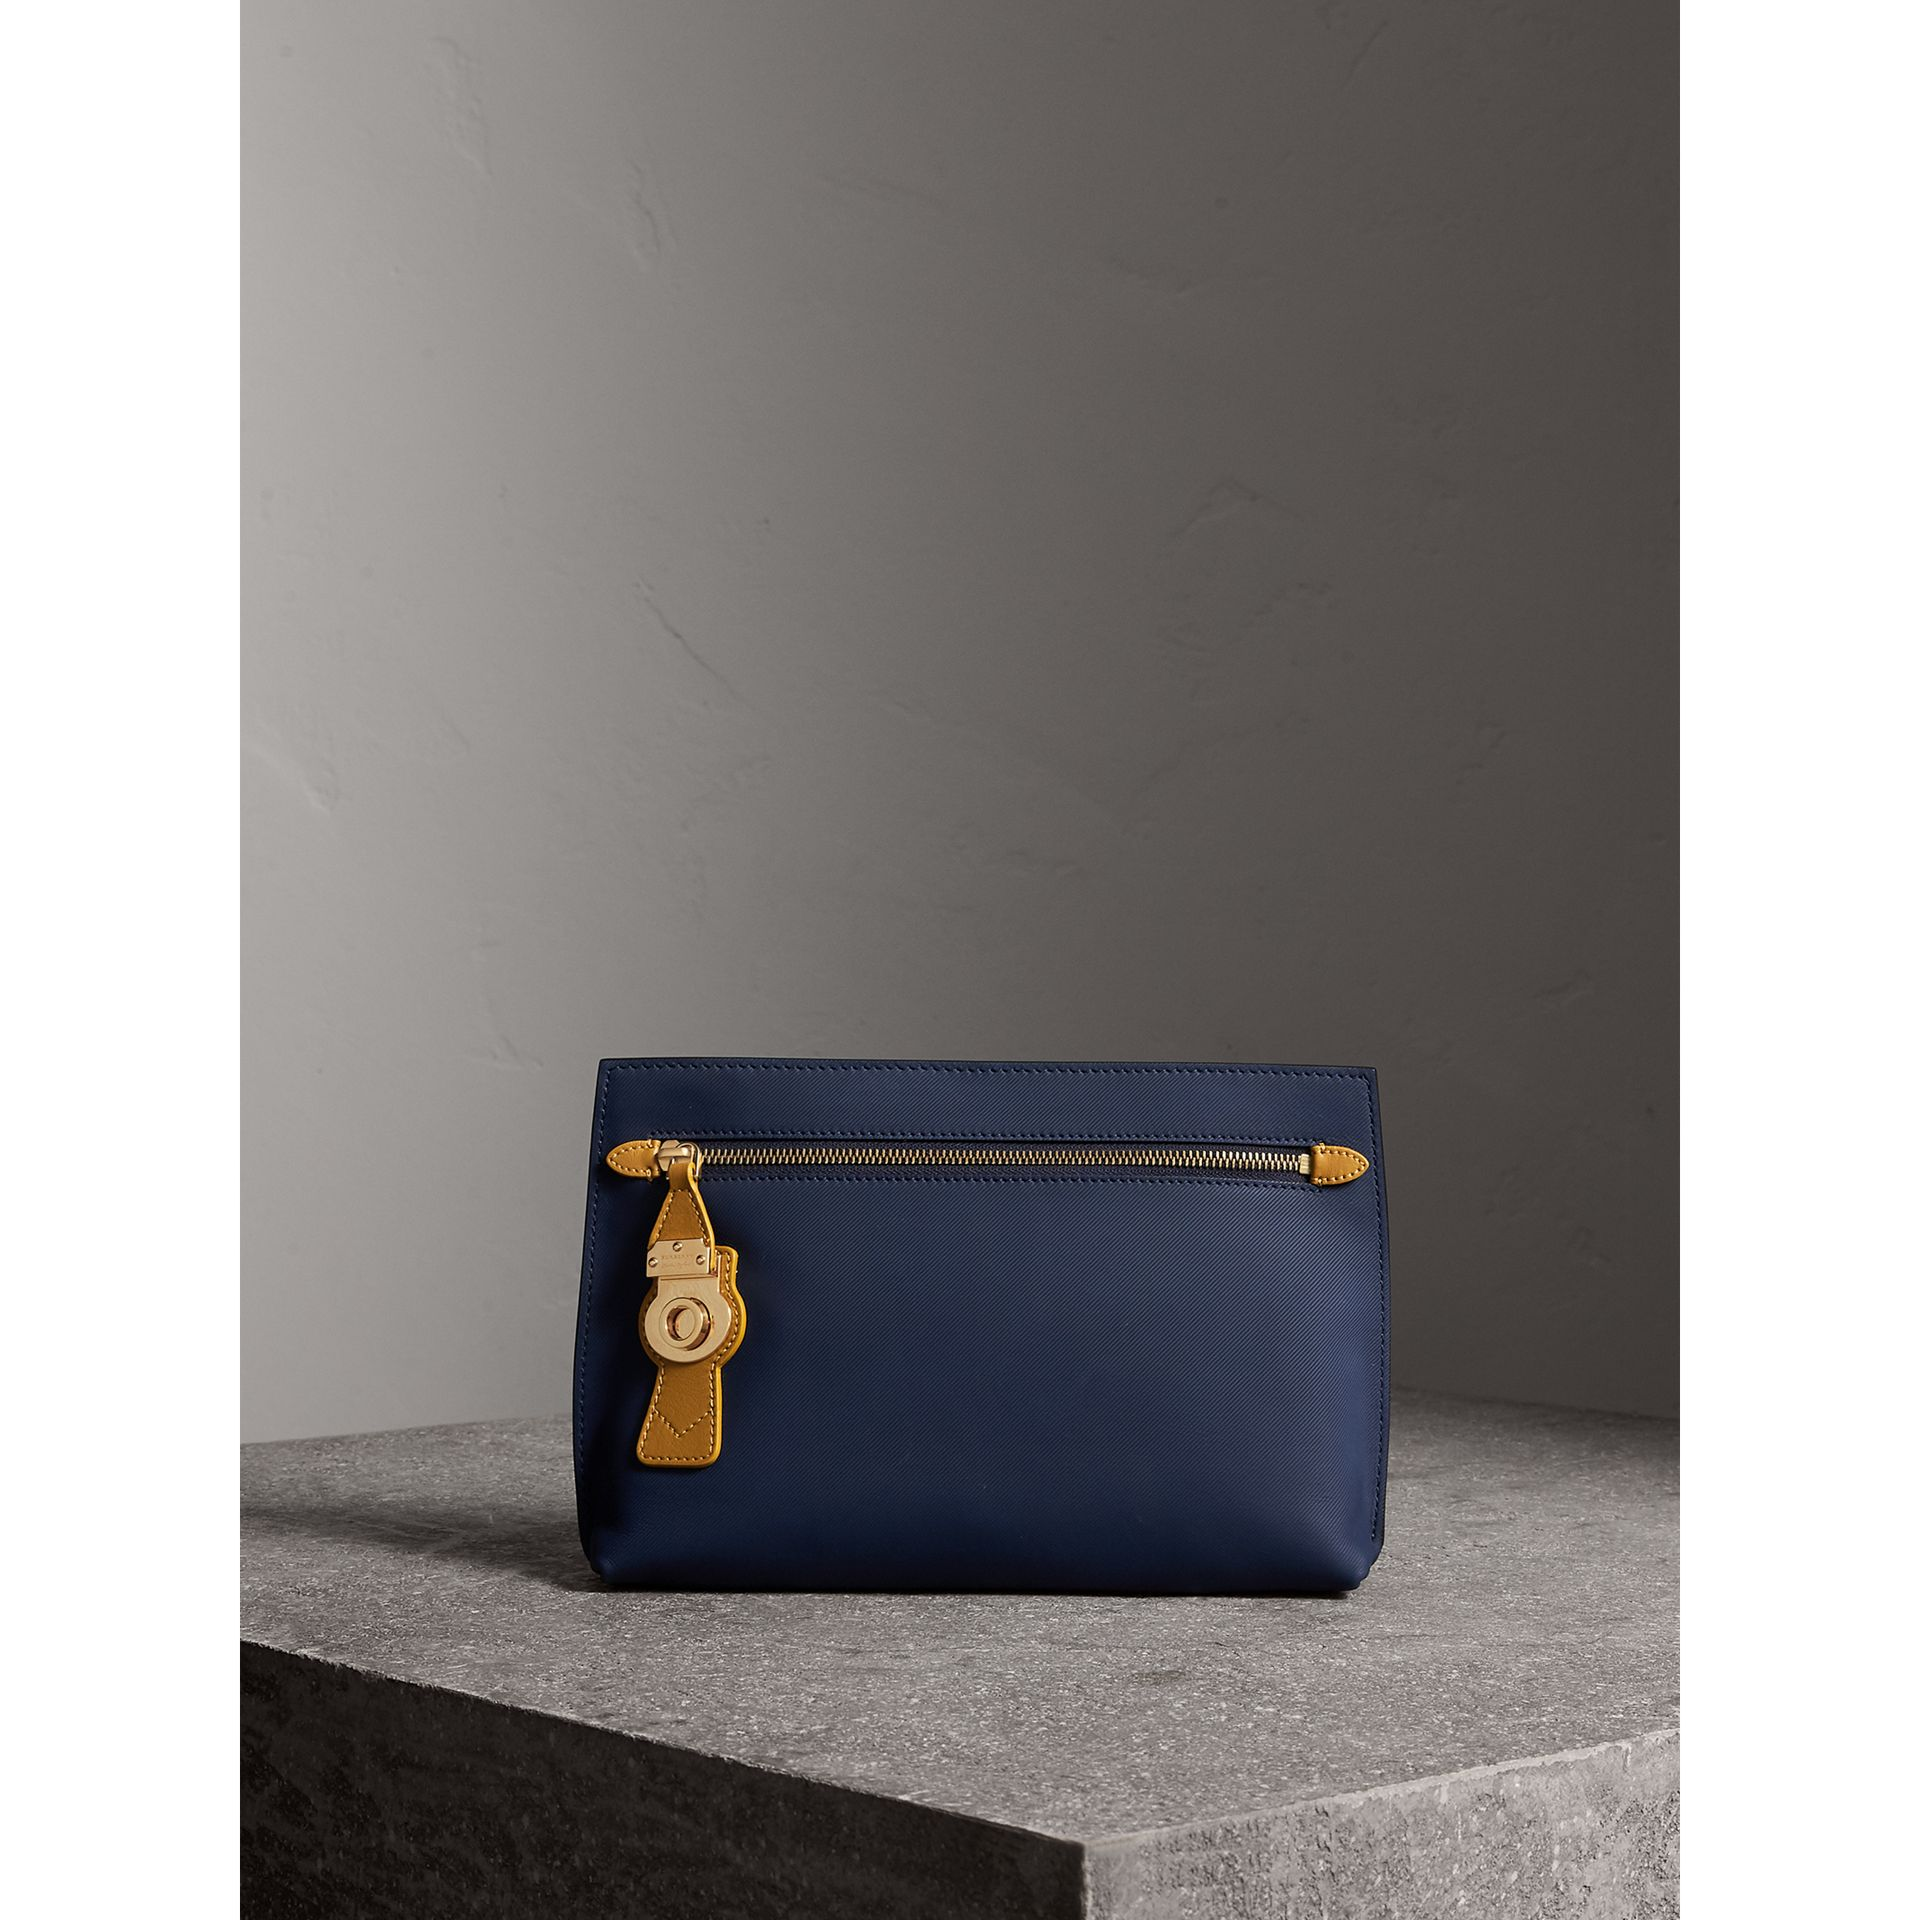 Two-tone Trench Leather Wristlet Pouch in Ink Blue/ochre Yellow - Women | Burberry Australia - gallery image 1